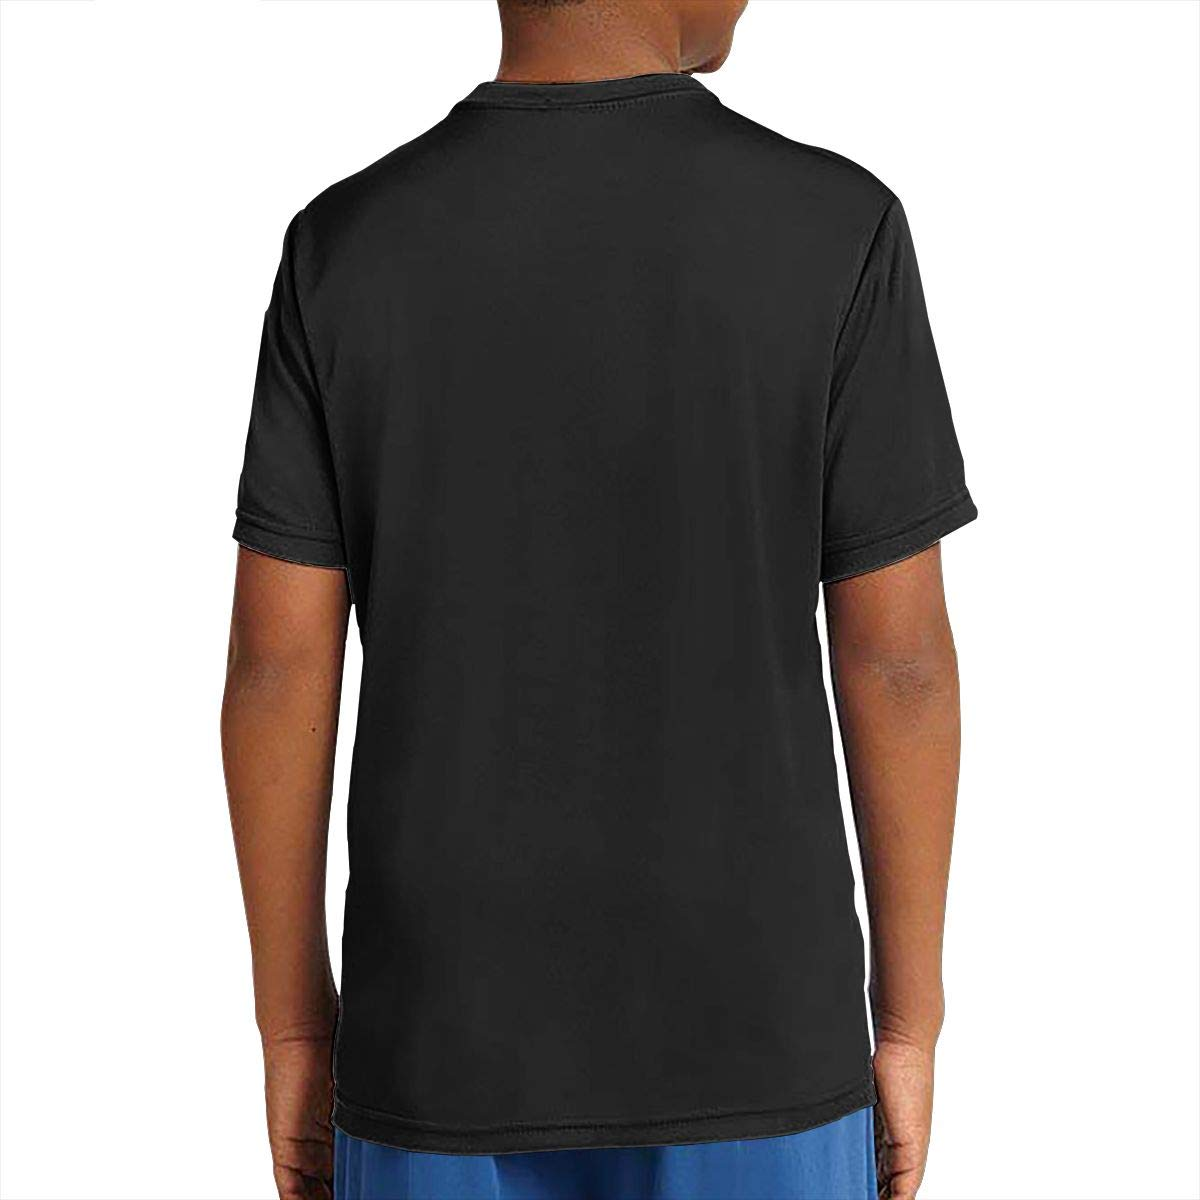 Yellowcard Music//Rock//Singer Cotton Shirt Round Neck Short Sleeve Shirts for Teen Boys and Girls Classic Fit Black